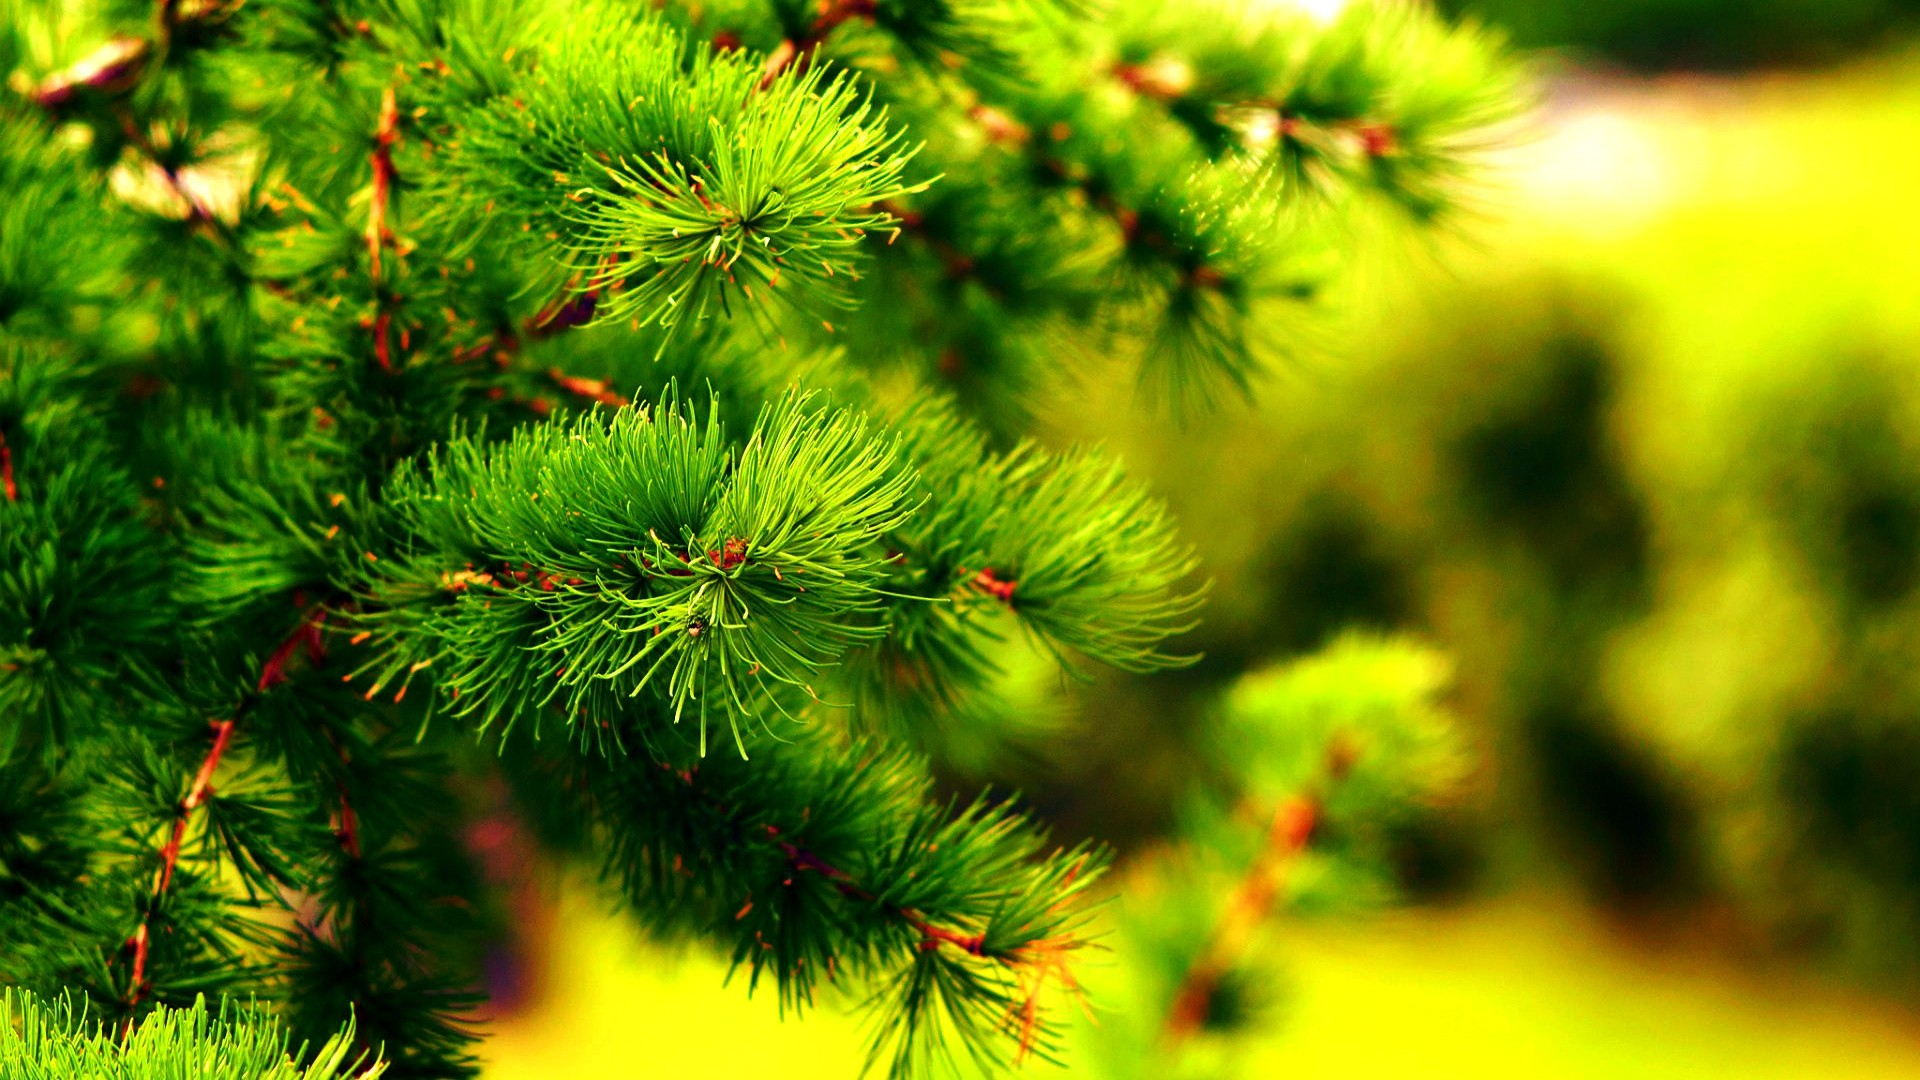 Pine Tree PC Wallpaper HD